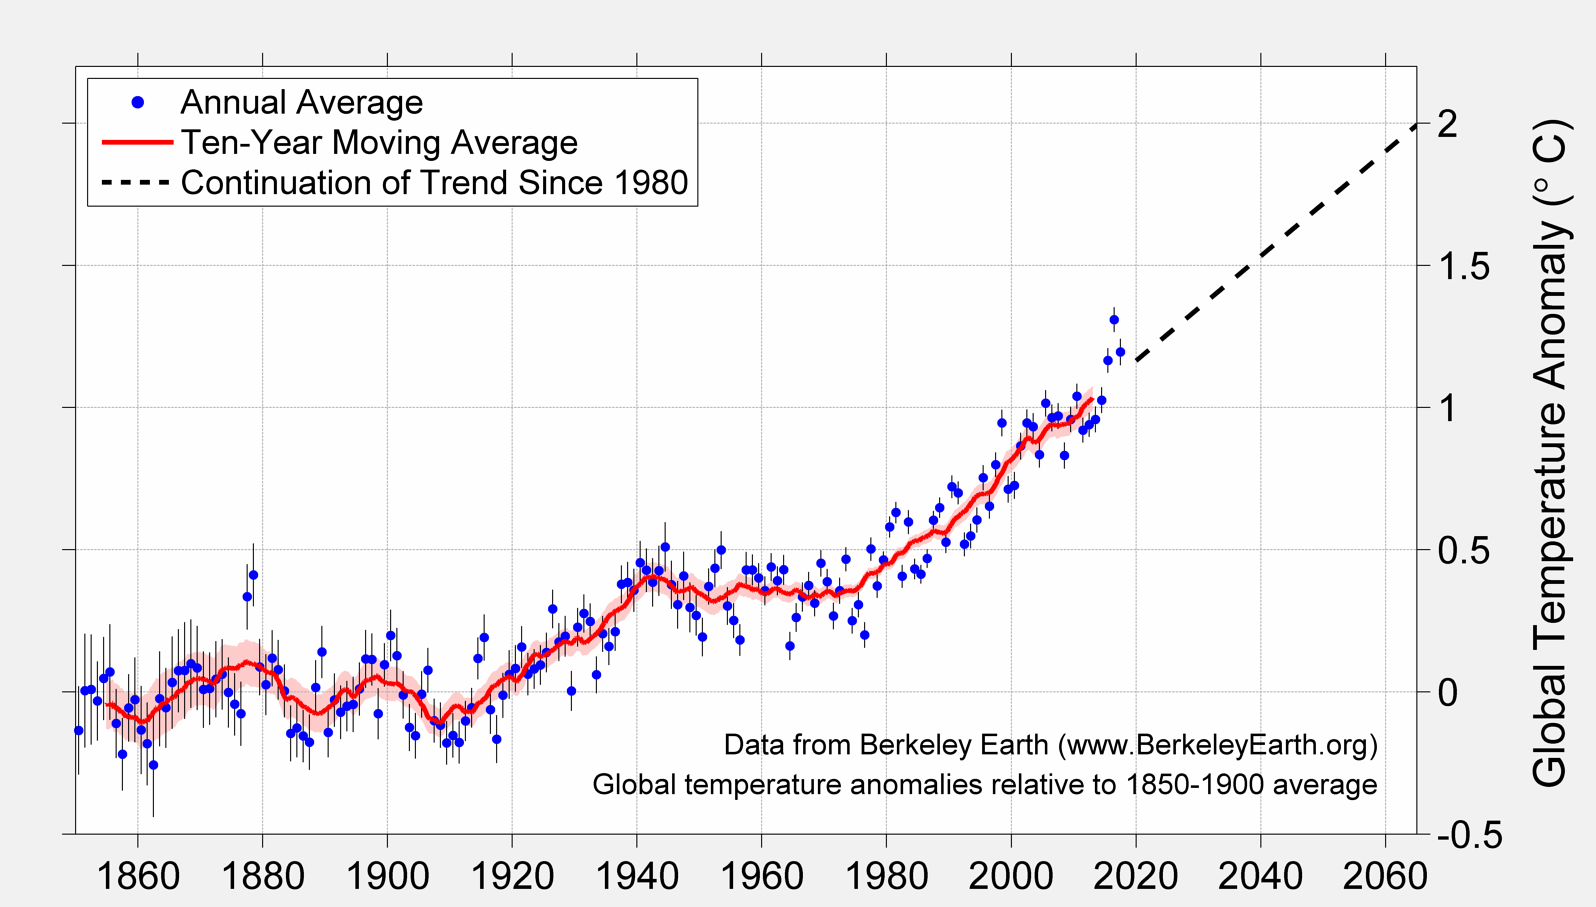 http://berkeleyearth.org/wp-content/uploads/2018/01/LongtermTrend2017.png